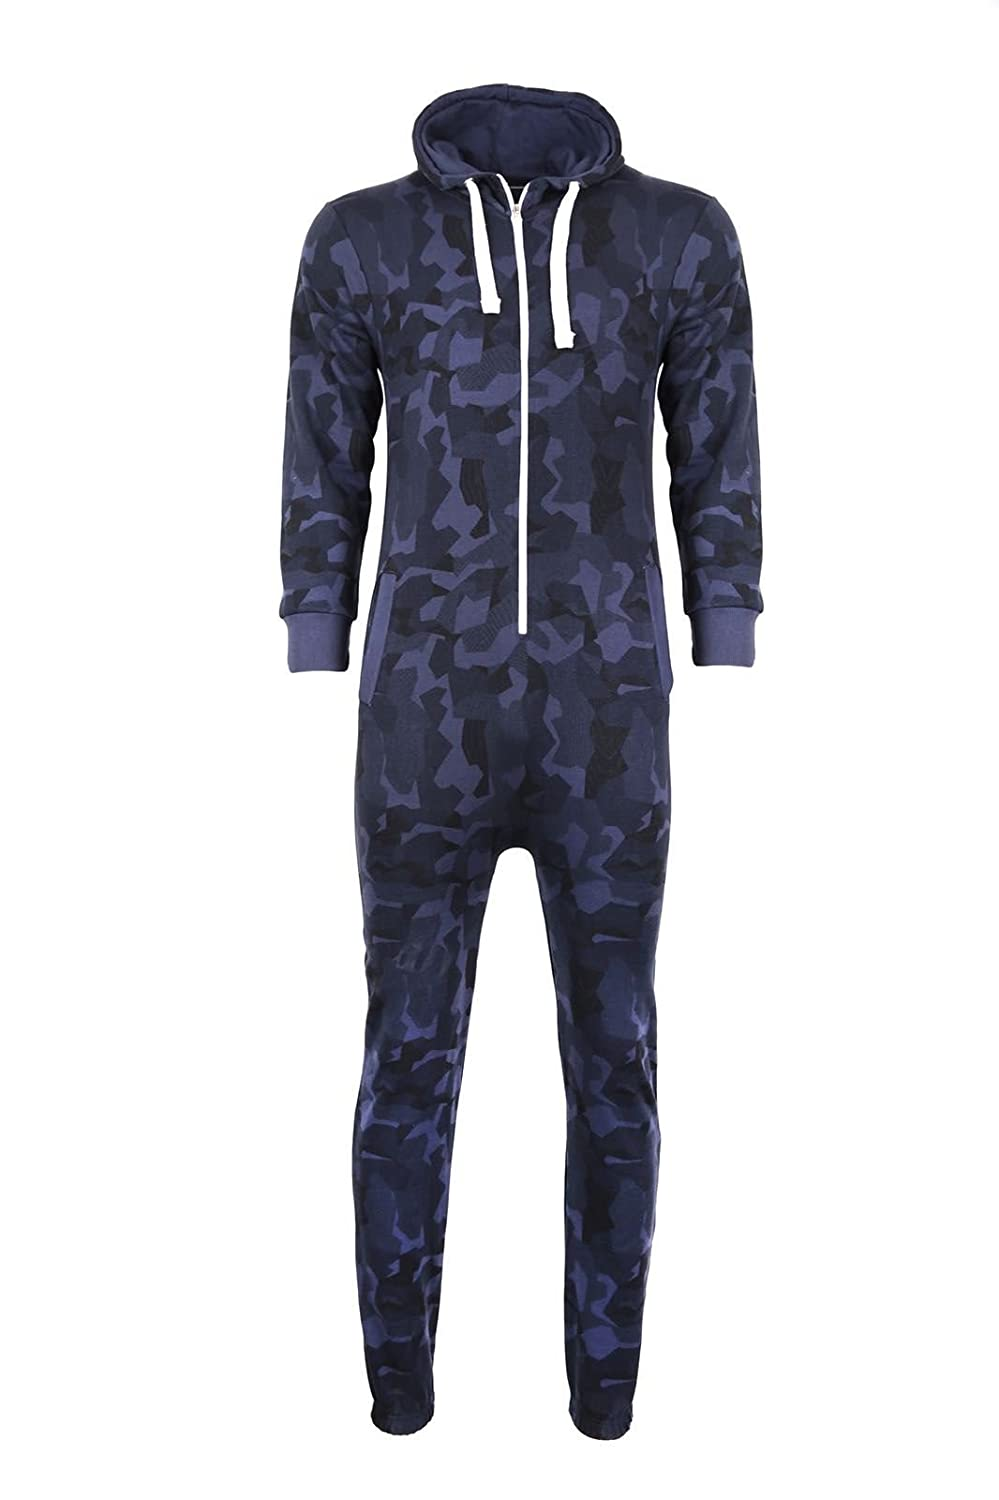 Kids Girls Boys Onesie Extra Soft Camouflage Aztec Print All in One Zip Up Hooded Tracksuit MMT